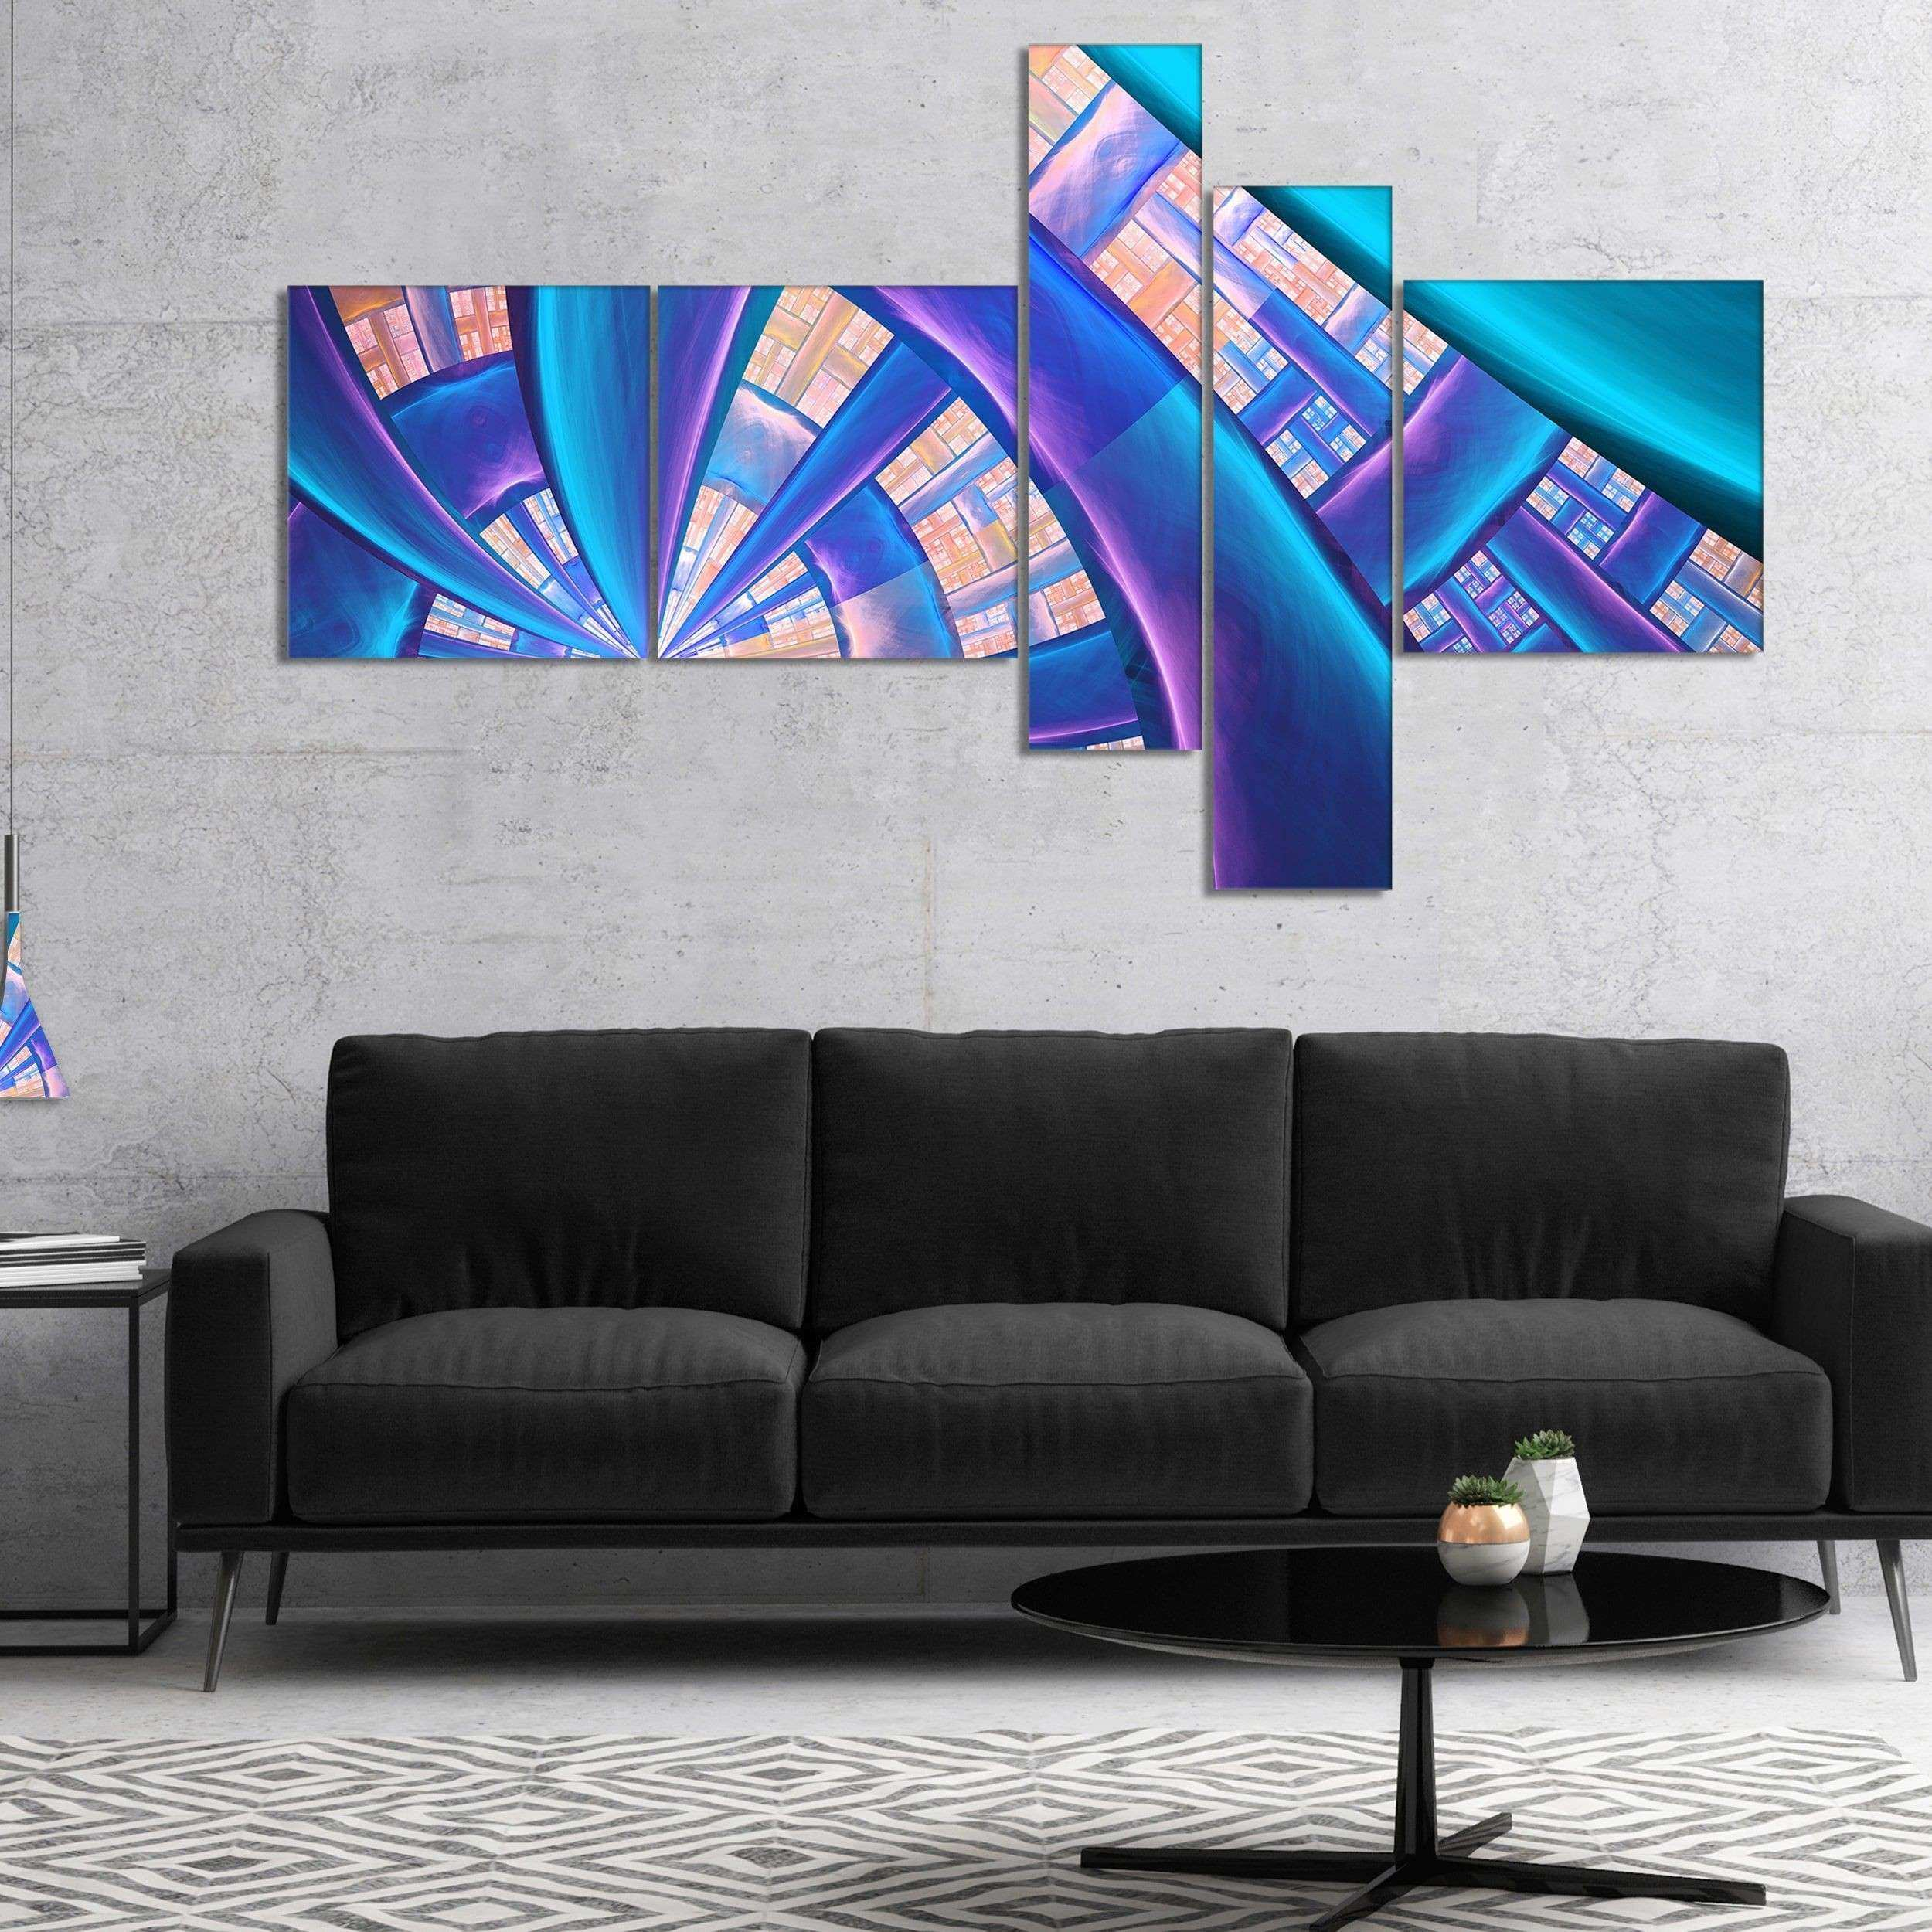 Designart Blue Fractal Stained Glass Abstract Canvas Art Print